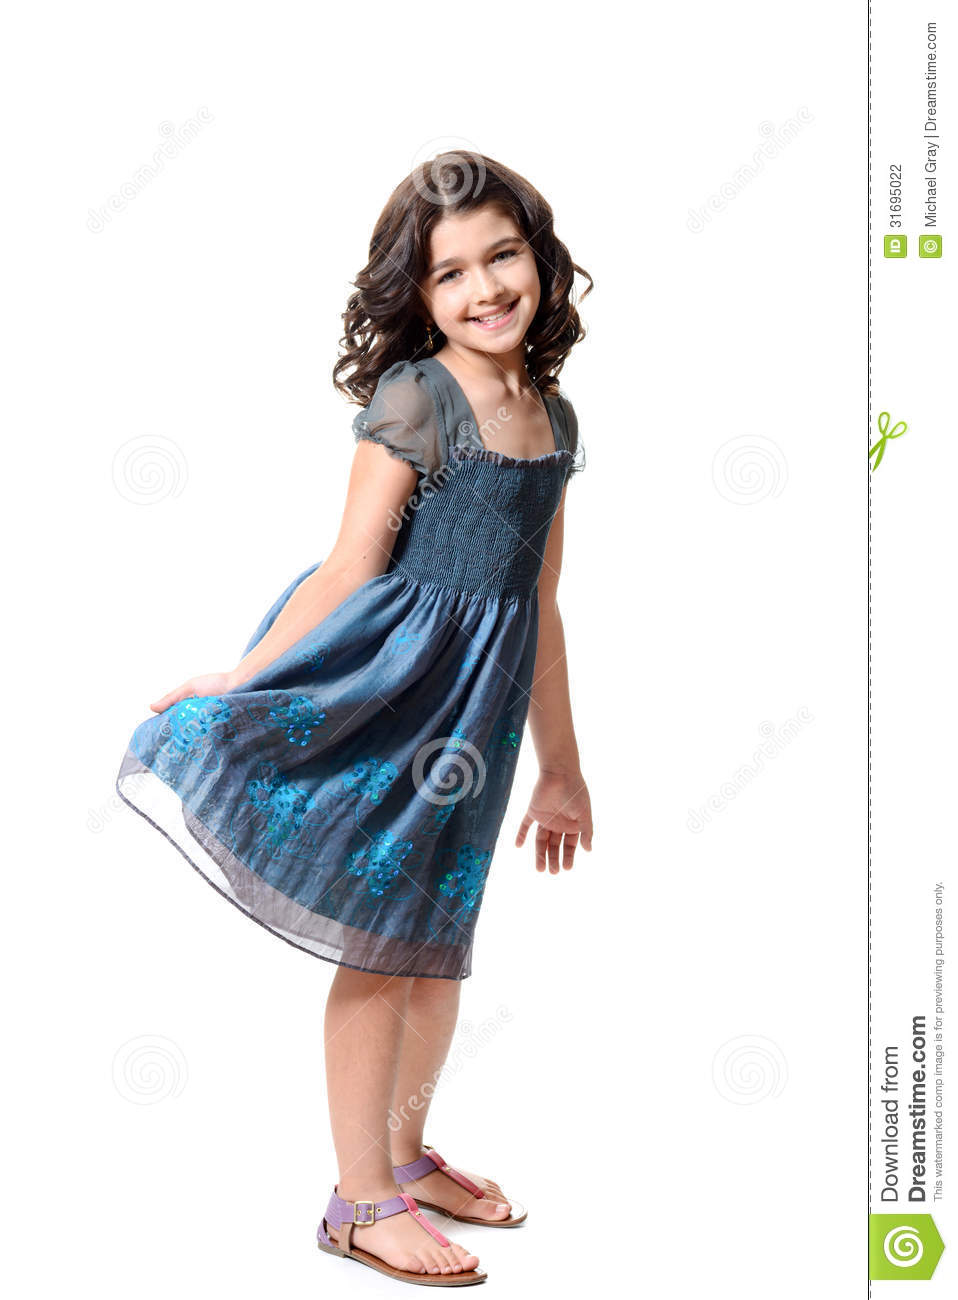 Cute dresses for girls have never been more creative or magical. This amazingly cute girls style resembles a pinwheel! Children love playing with pinwheels, which is why people often say that our cute dresses for girls are like wearing a toy.